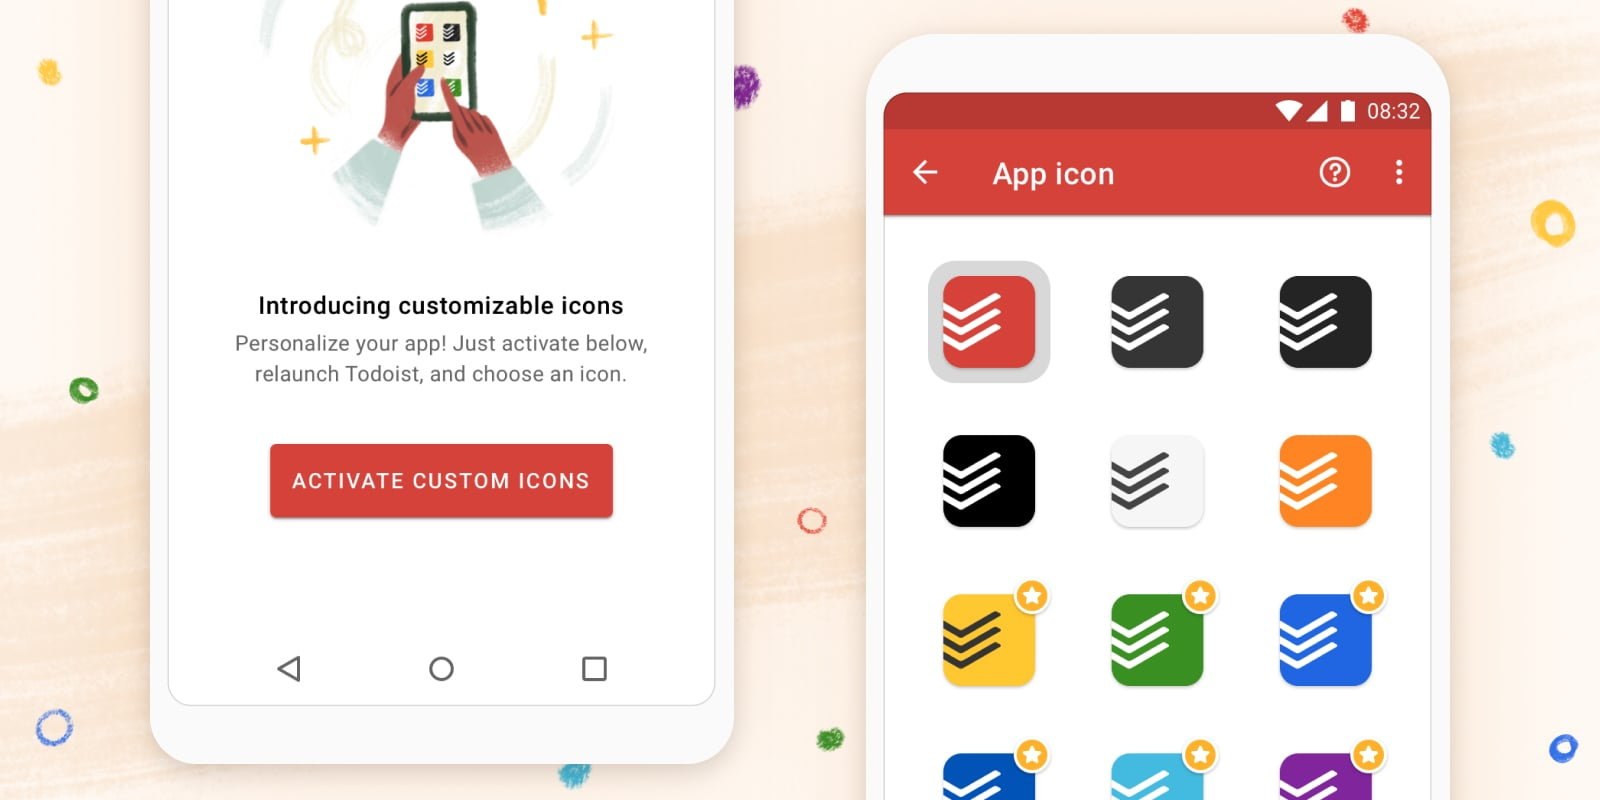 Personalize your app with customizable mobile icons!